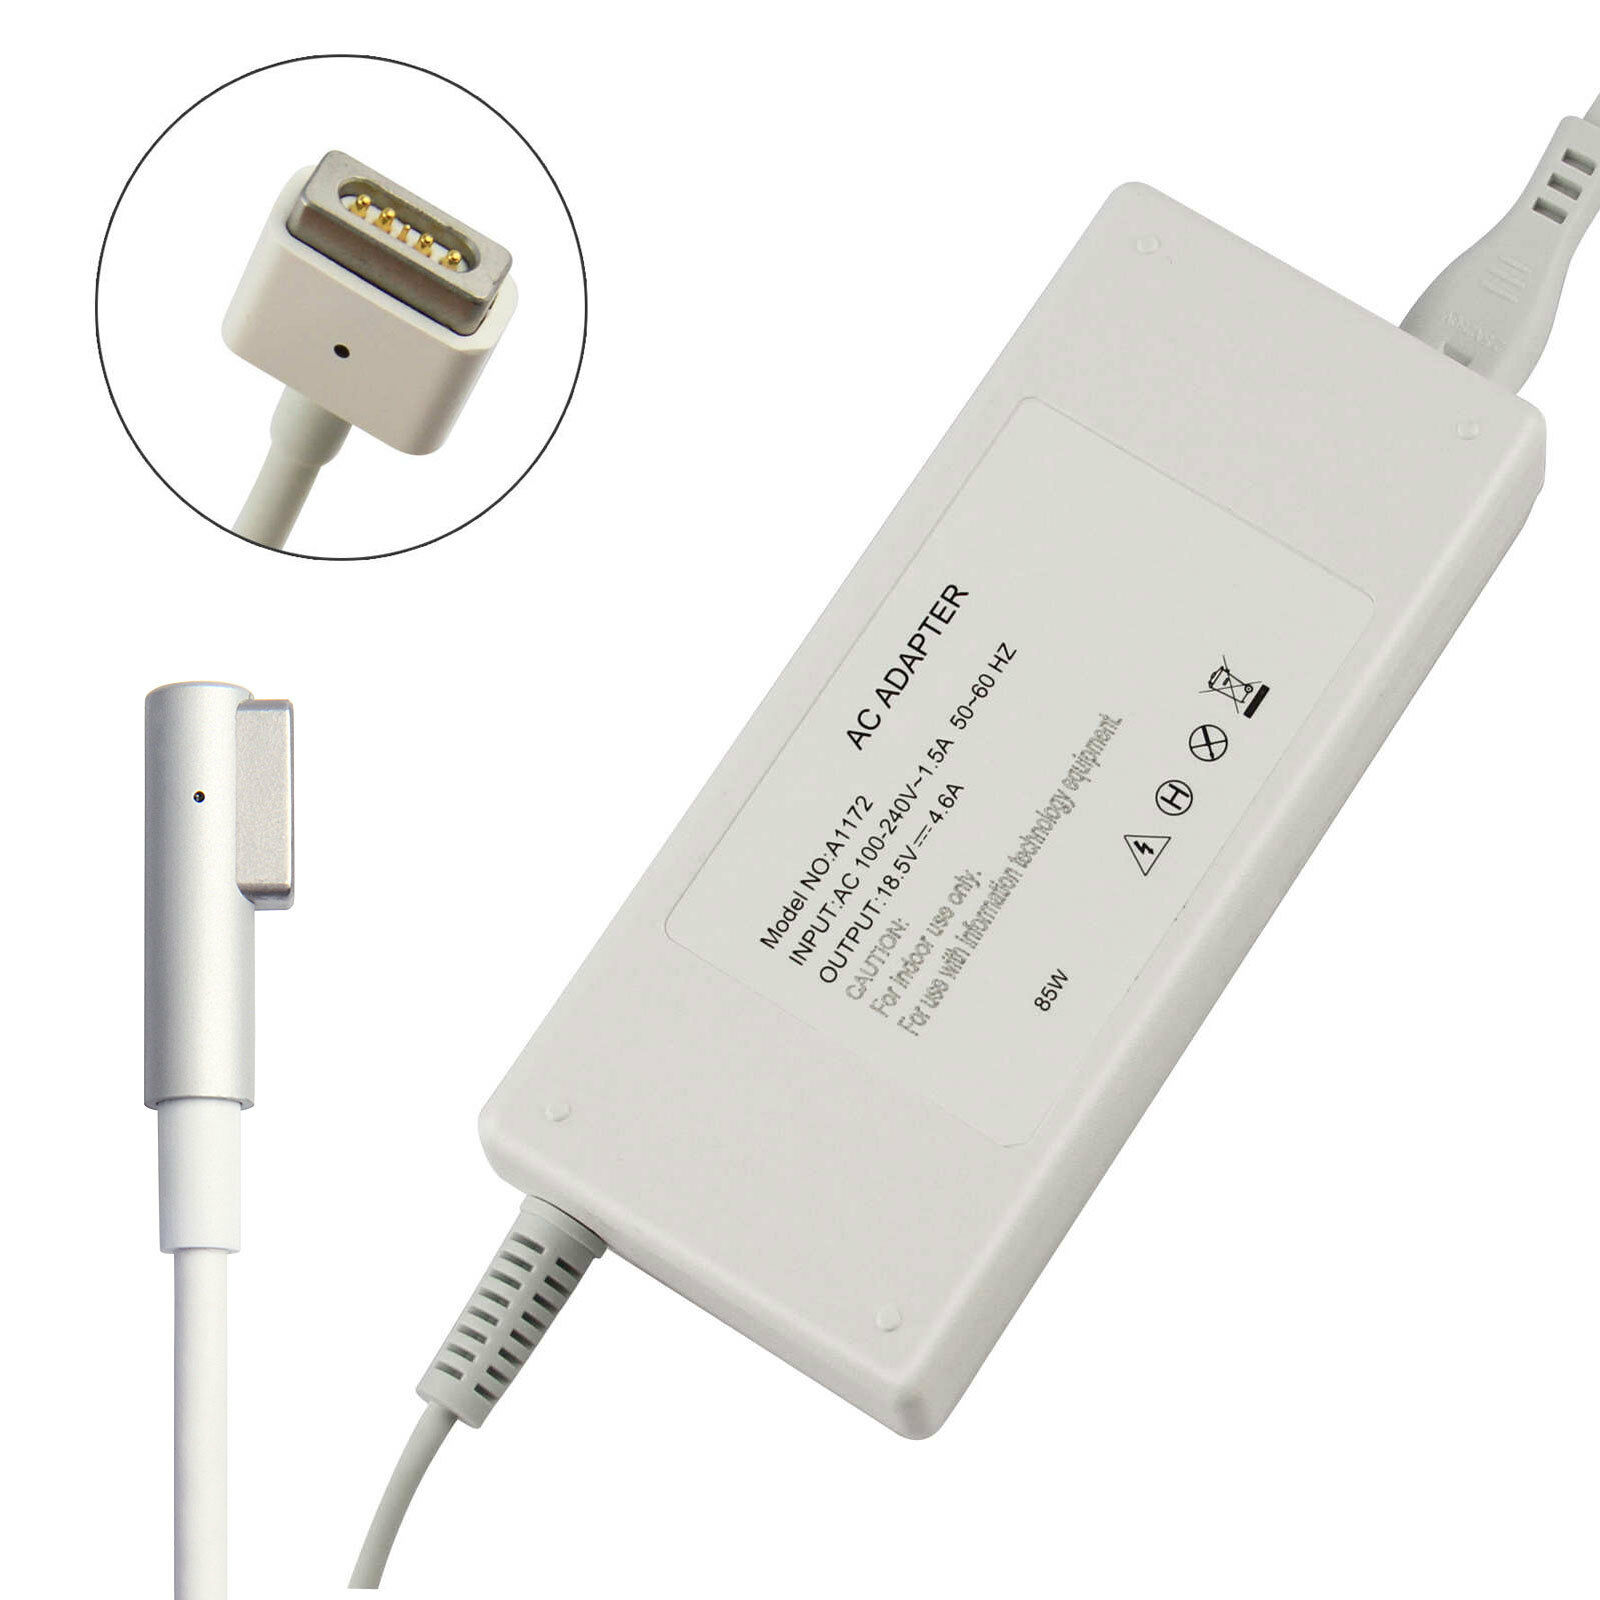 85w 60w 45w Ac Charger Power Supply Adapter For Apple Macbook Pro 13 Adaptor Magsafe A1181 A1184 A1278 A1330 A1344 15 1 Of 6free Shipping